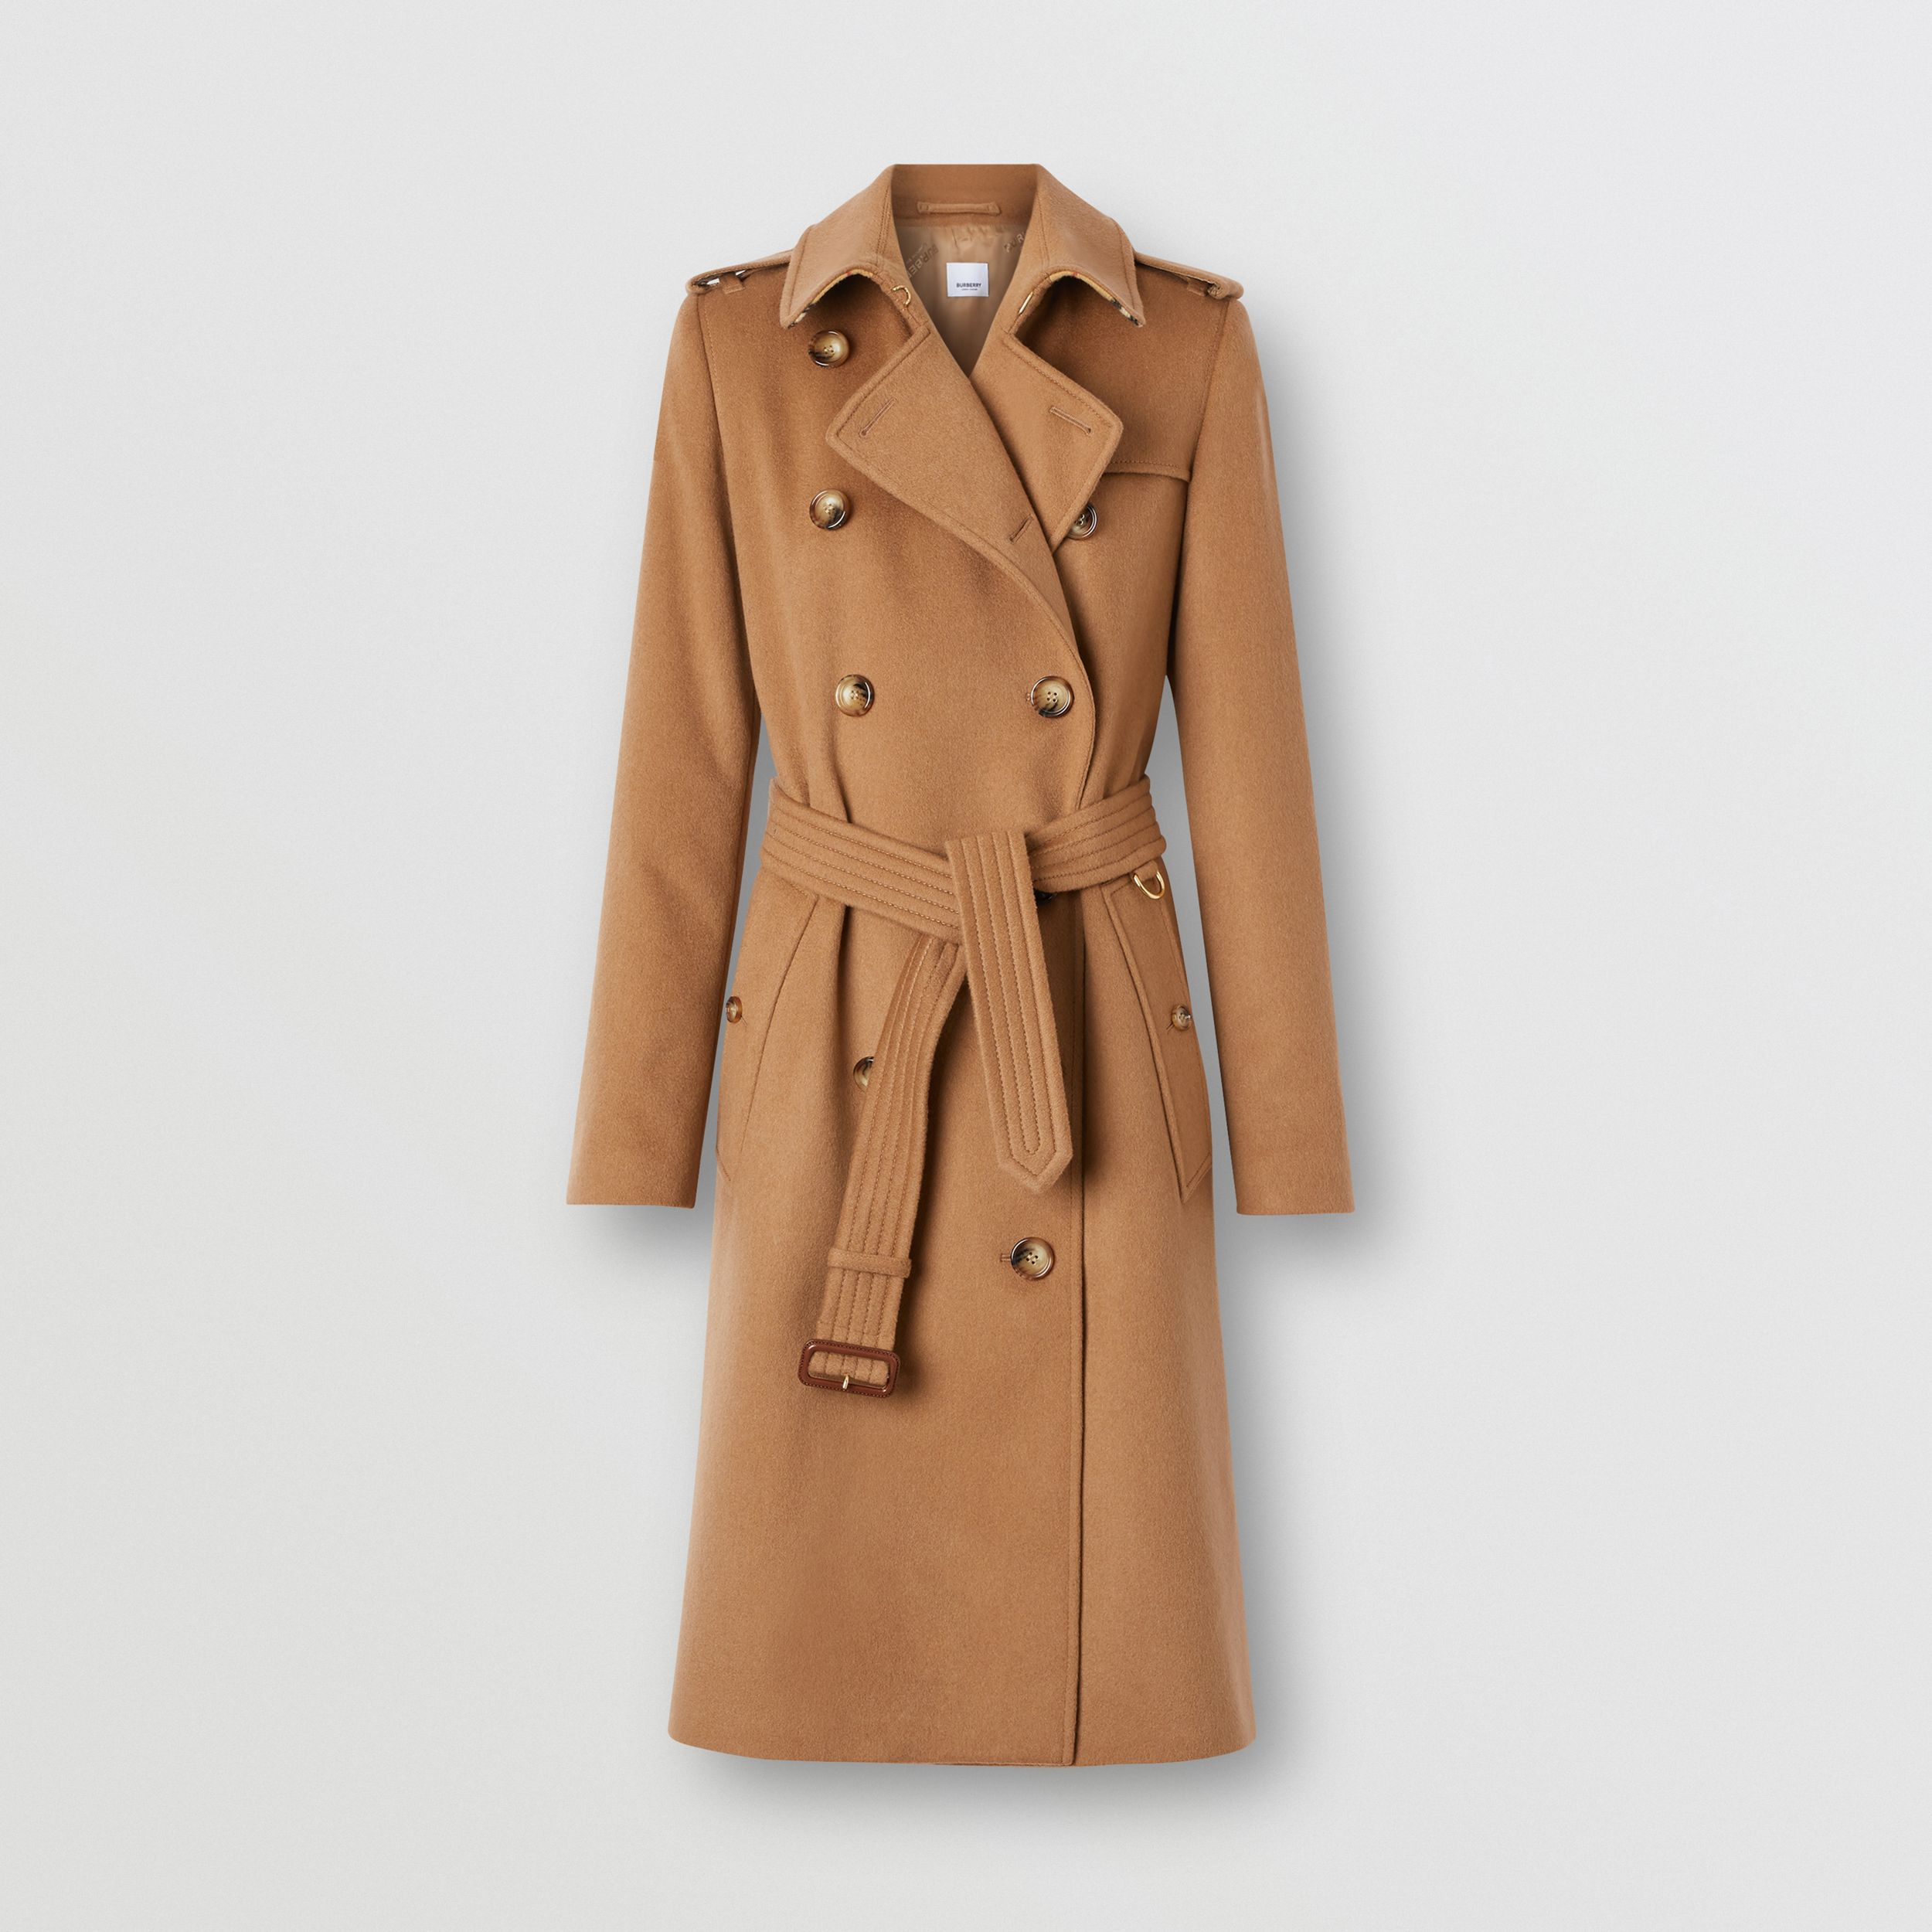 Cashmere Trench Coat in Bronze - Women | Burberry - 4